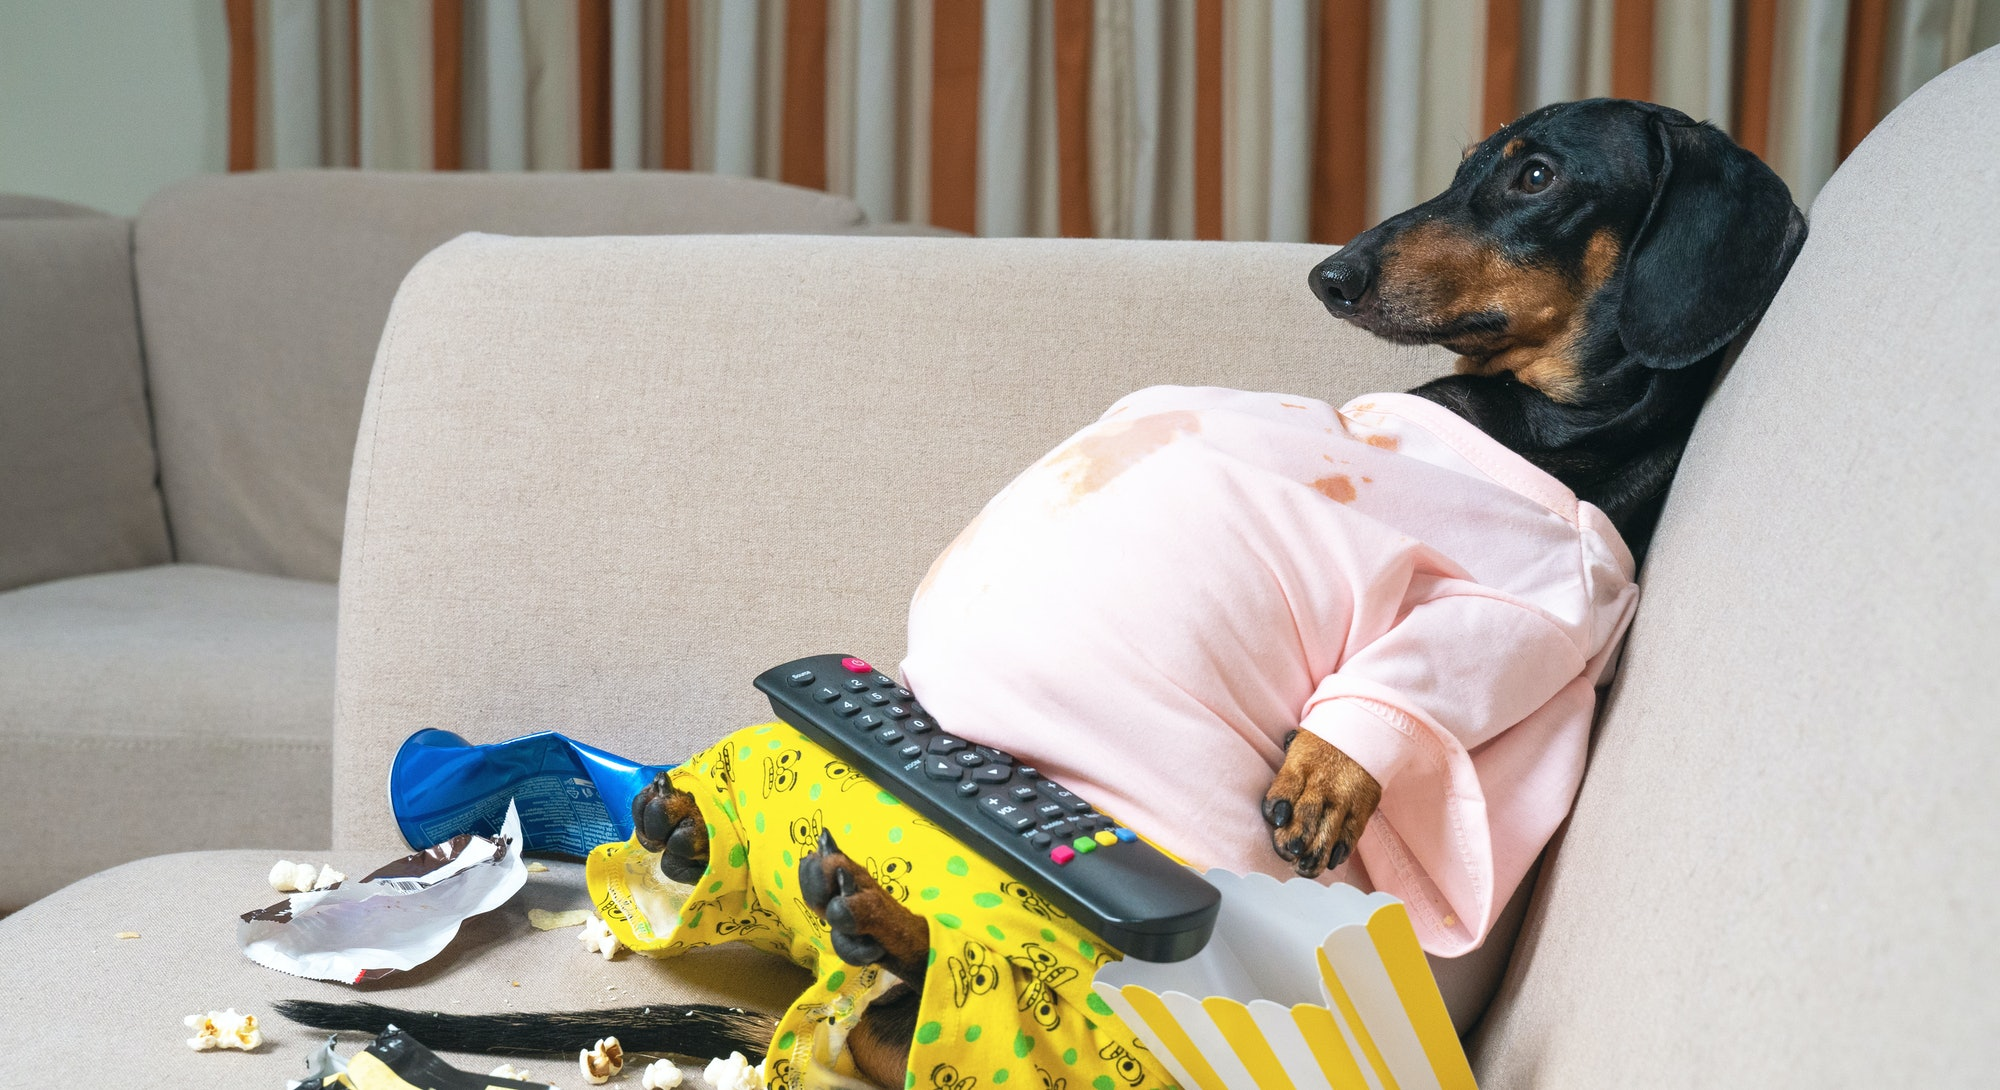 fat dog couch potato eating a popcorn, chocolate, fast food and watching television. Parody of a lazy person. quarantined and stay home